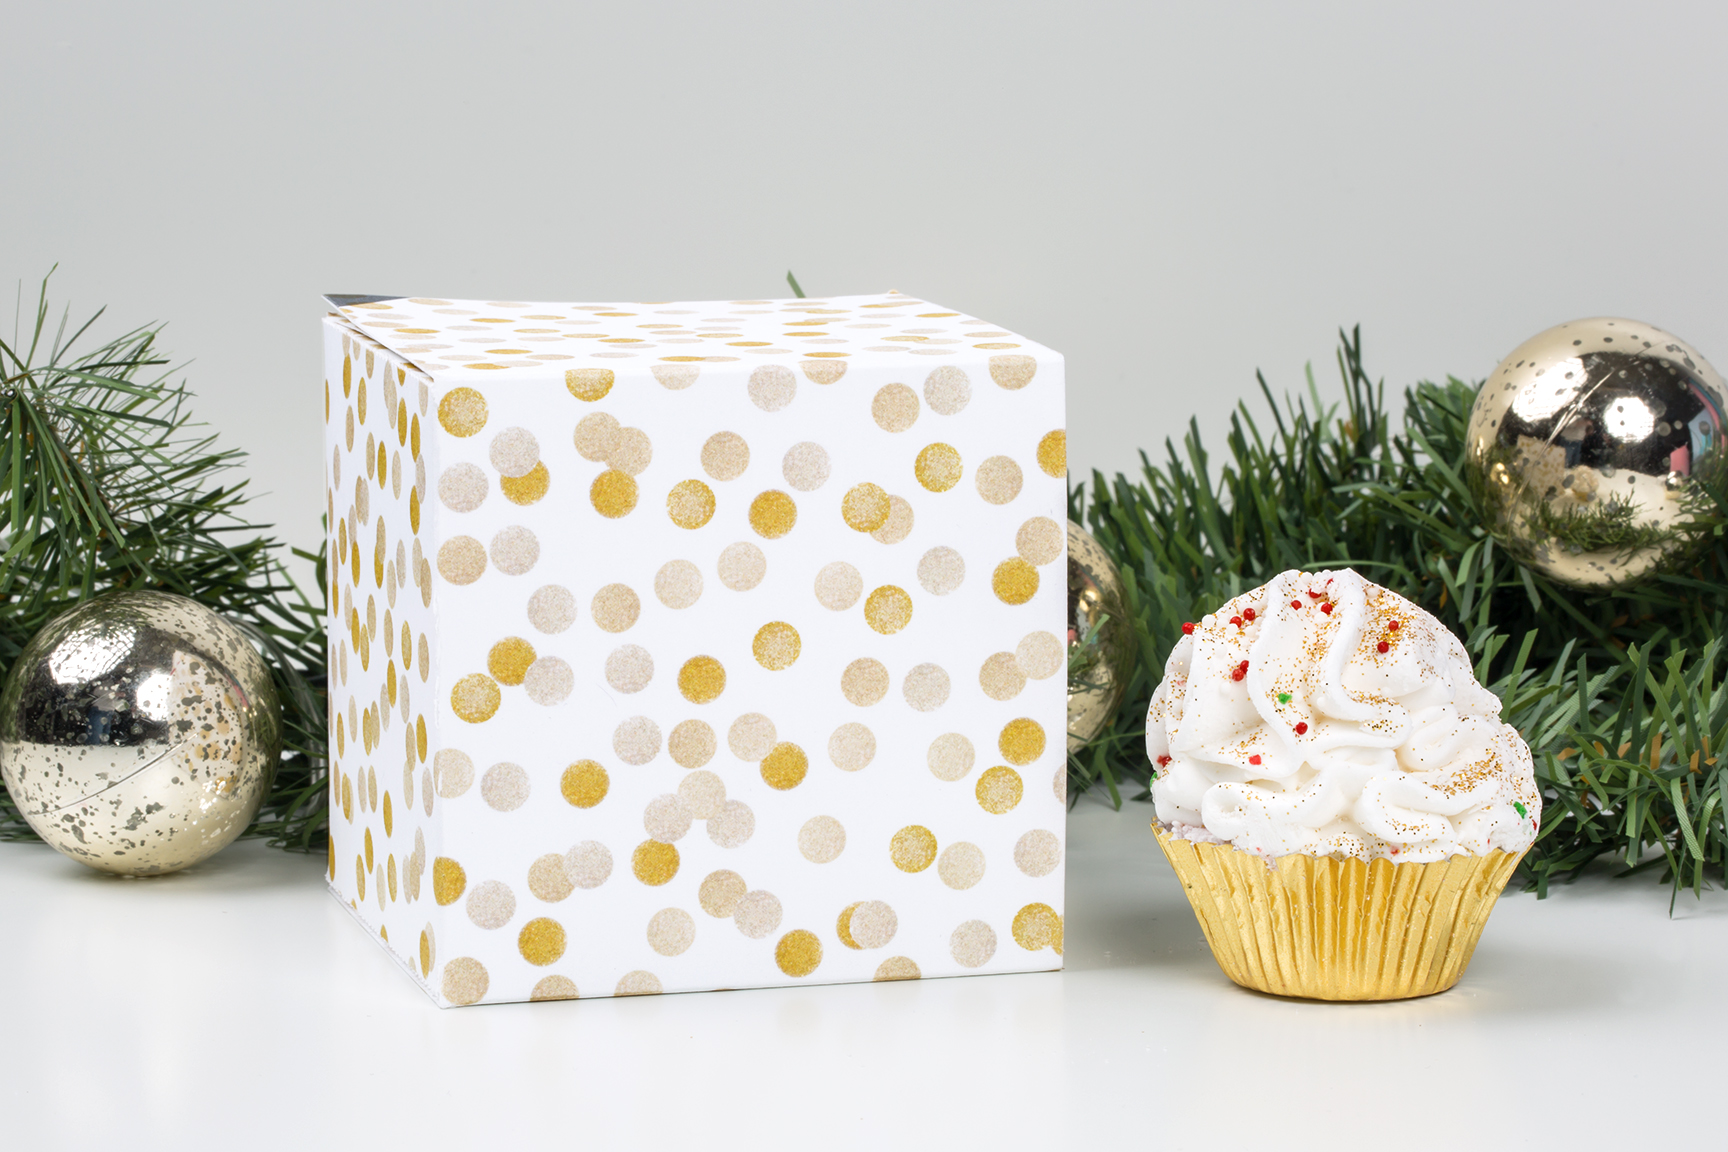 Candy cane cupcake bathbomb and gold confetti holiday pairing